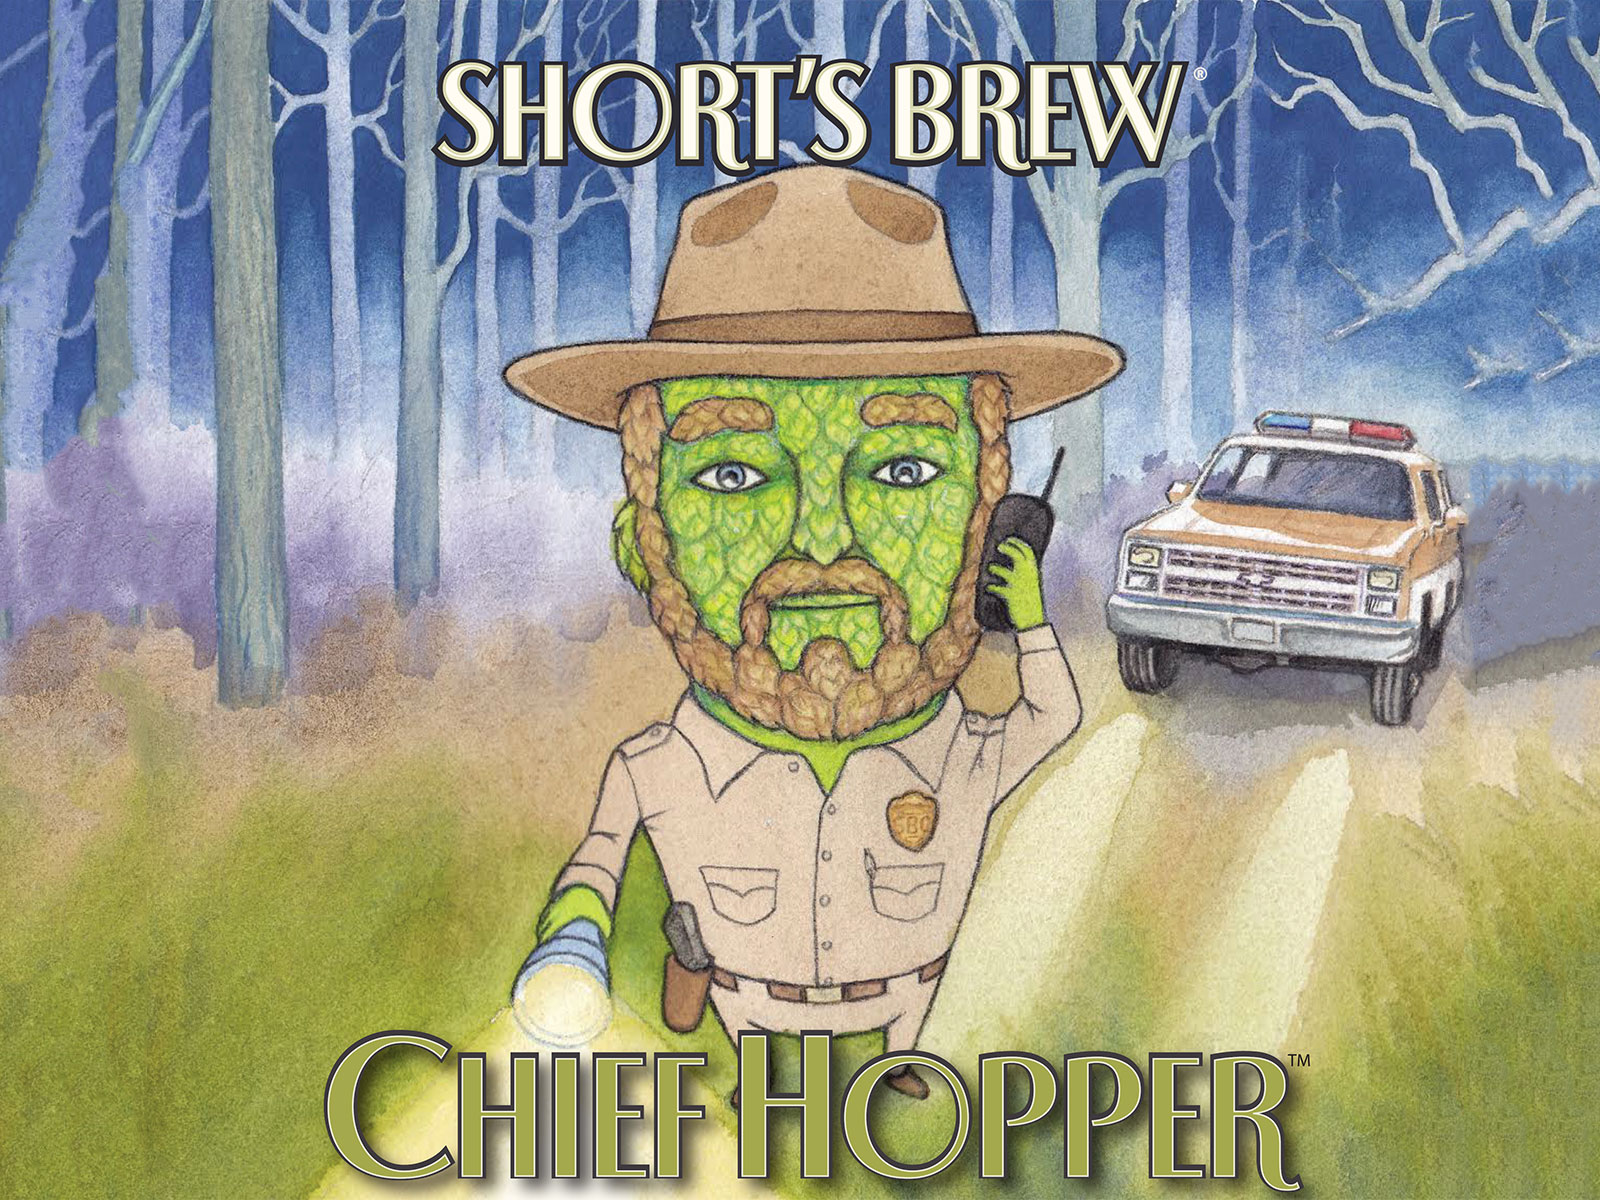 chief hopper label